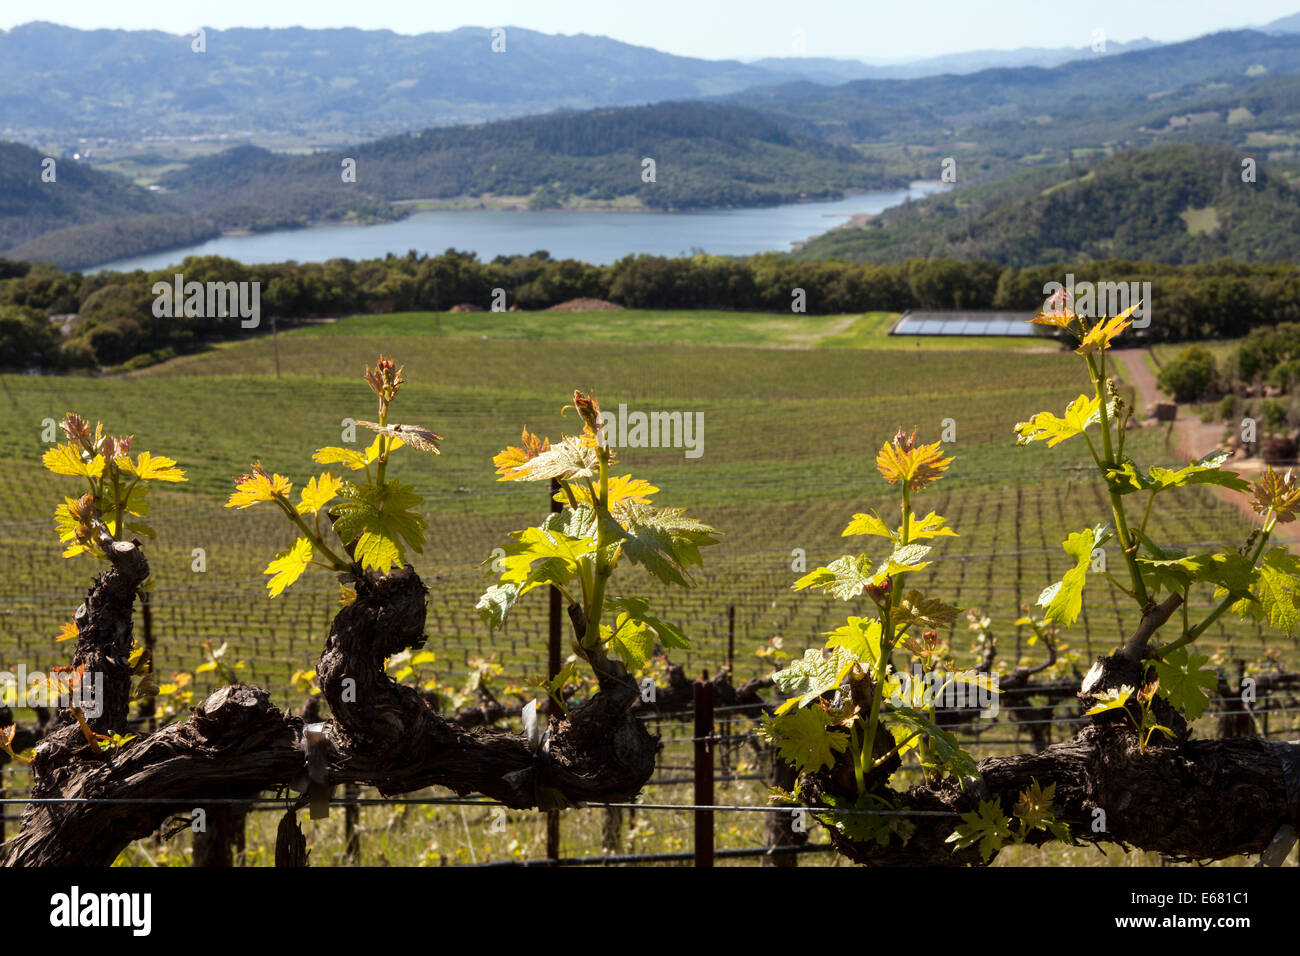 Hennessey Lake viewed from Continuum Estate, Napa Valley, California, USA Stock Photo